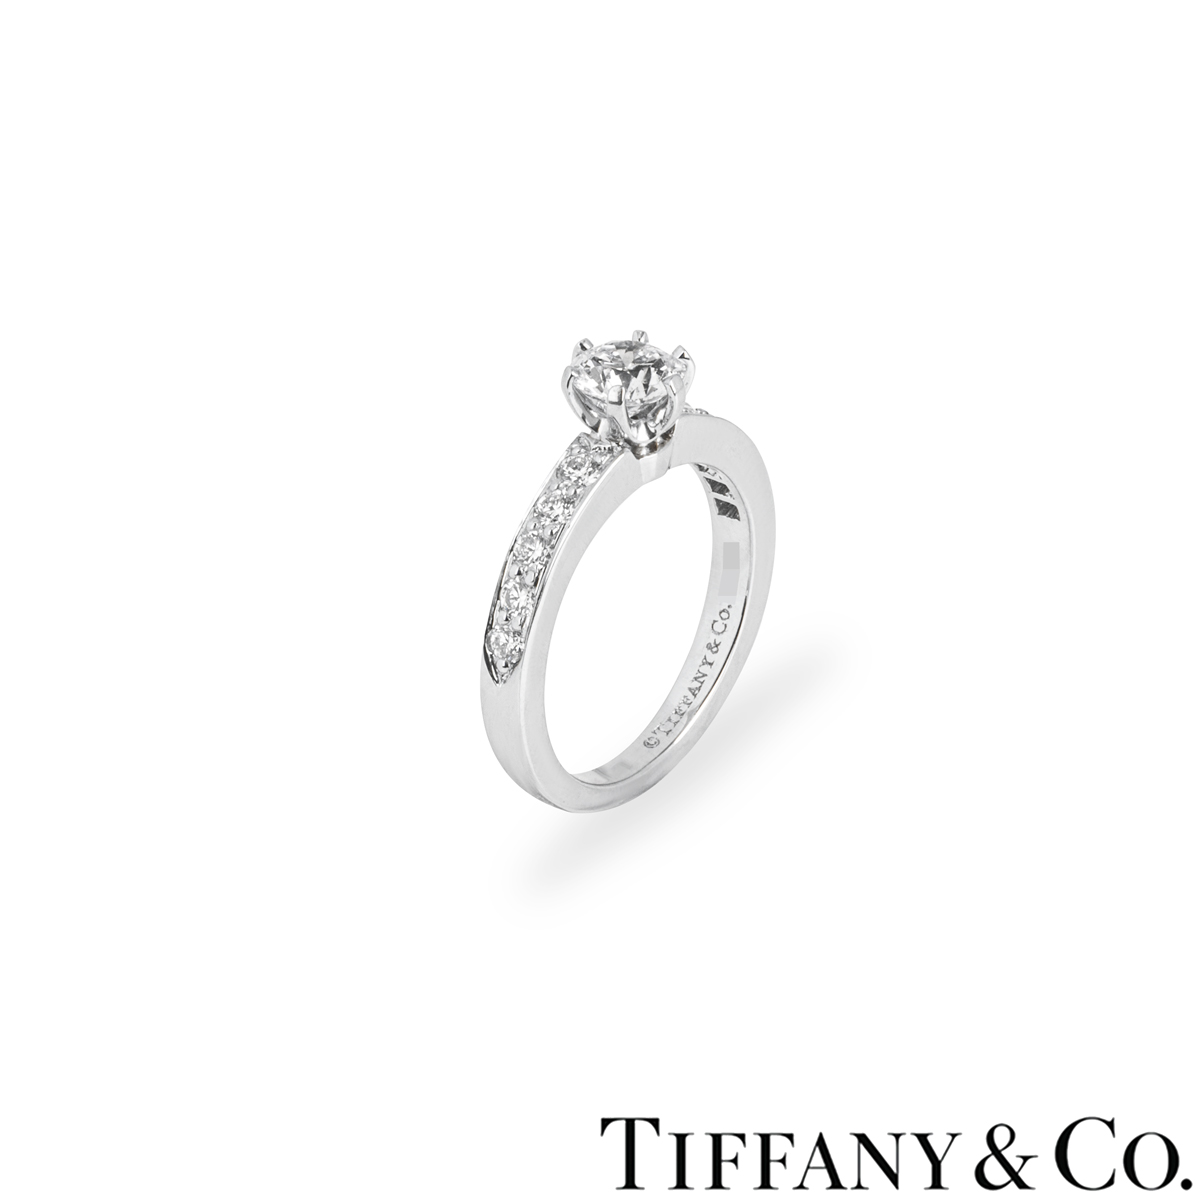 Tiffany & Co. Platinum Diamond Setting Ring 0.51ct G/VS1